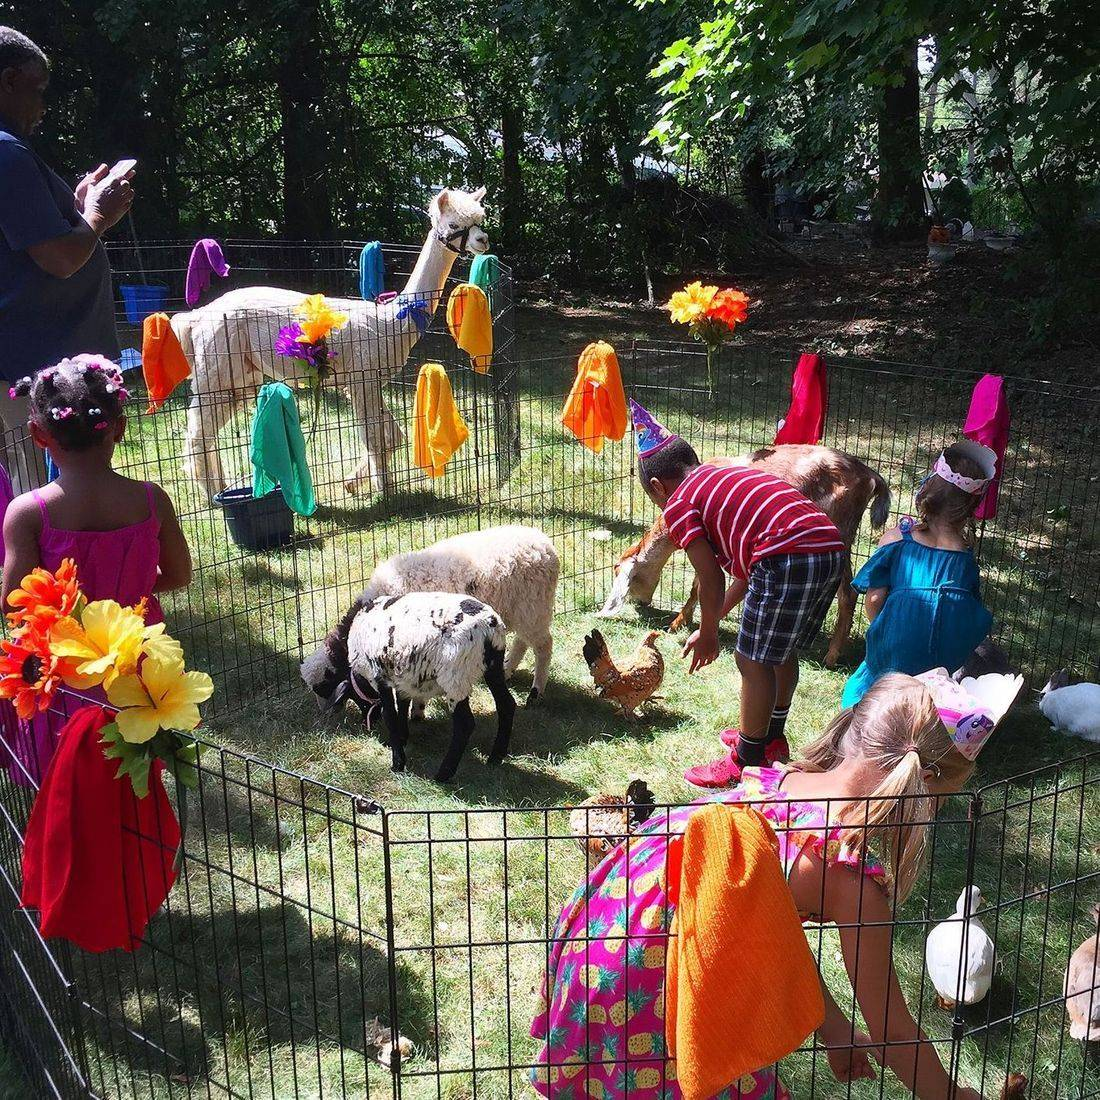 petting zoo with lots of colorful towels hanging on fence